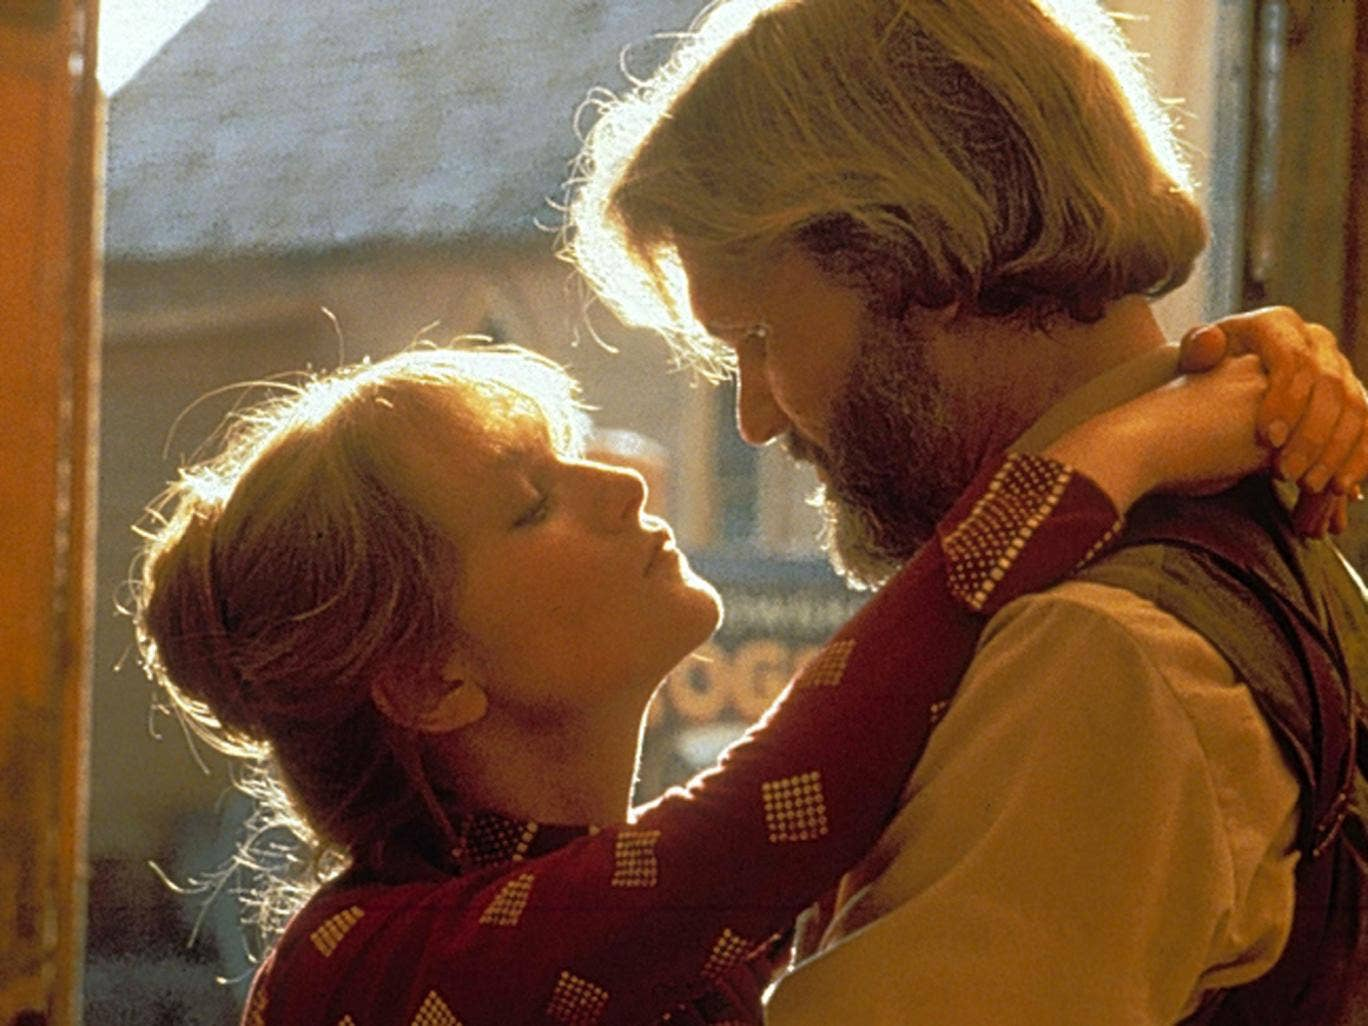 Trouble in paradise: Isabelle Huppert and Kris Kristofferson in the box-office flop 'Heaven's Gate'